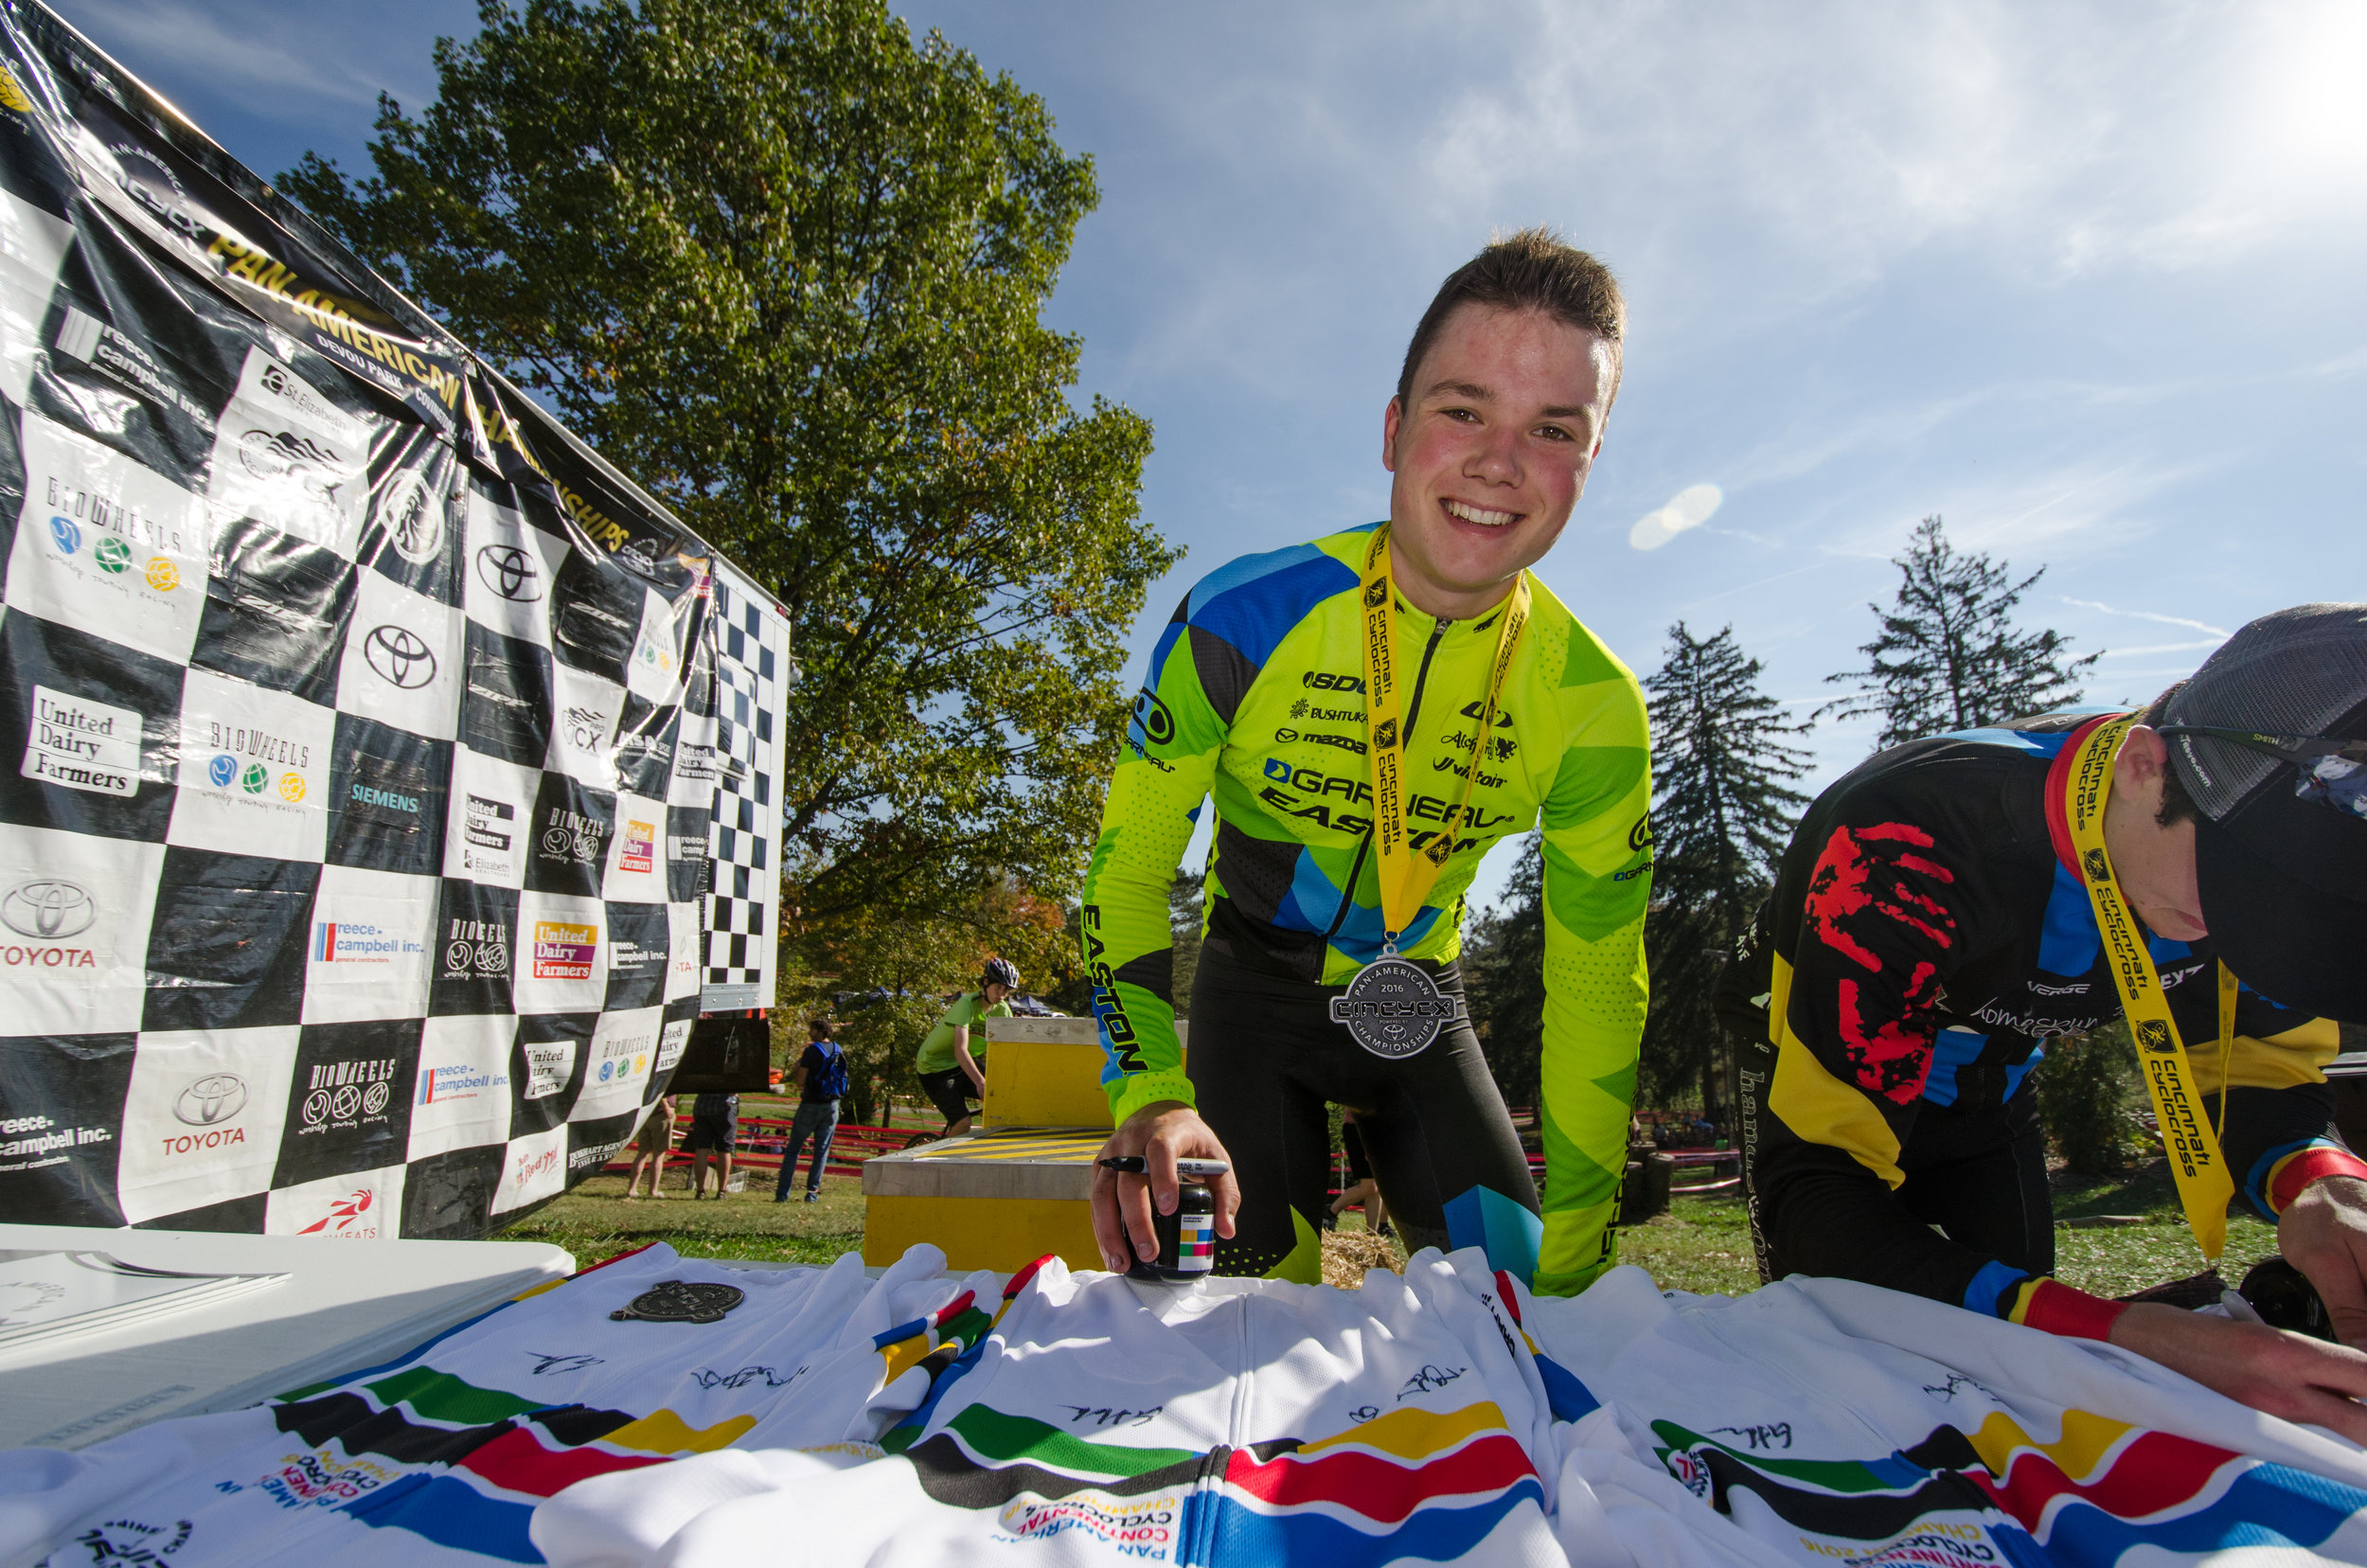 2016102914004130-cxpanamchamps.jpg